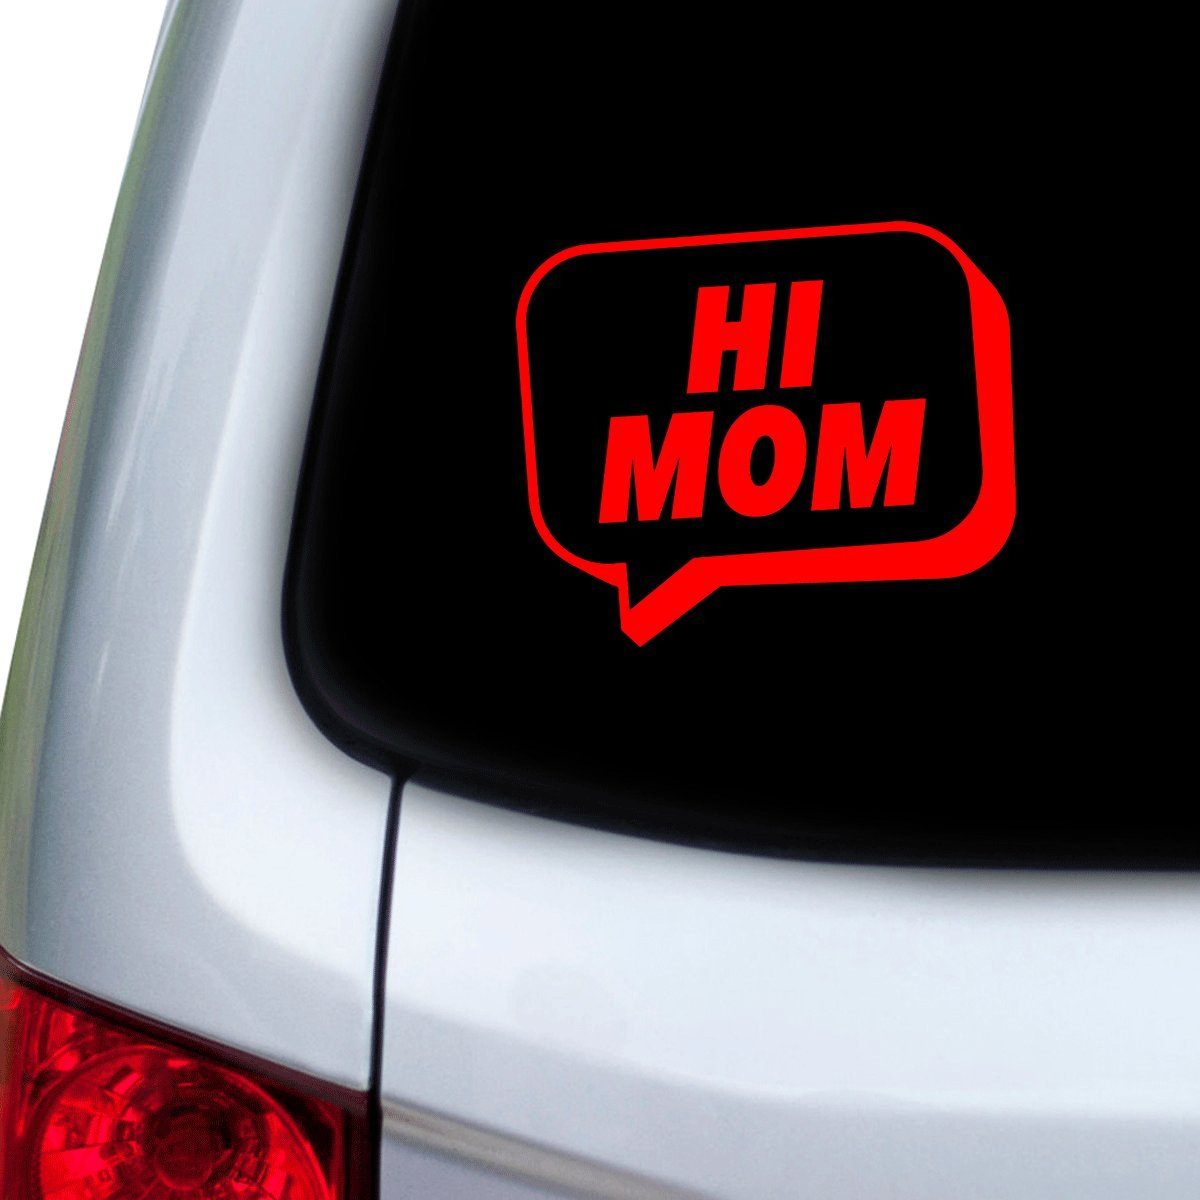 Hoods Red StickAny Car and Auto Decal Series Hi Mom Speech Bubble Sticker for Windows Doors